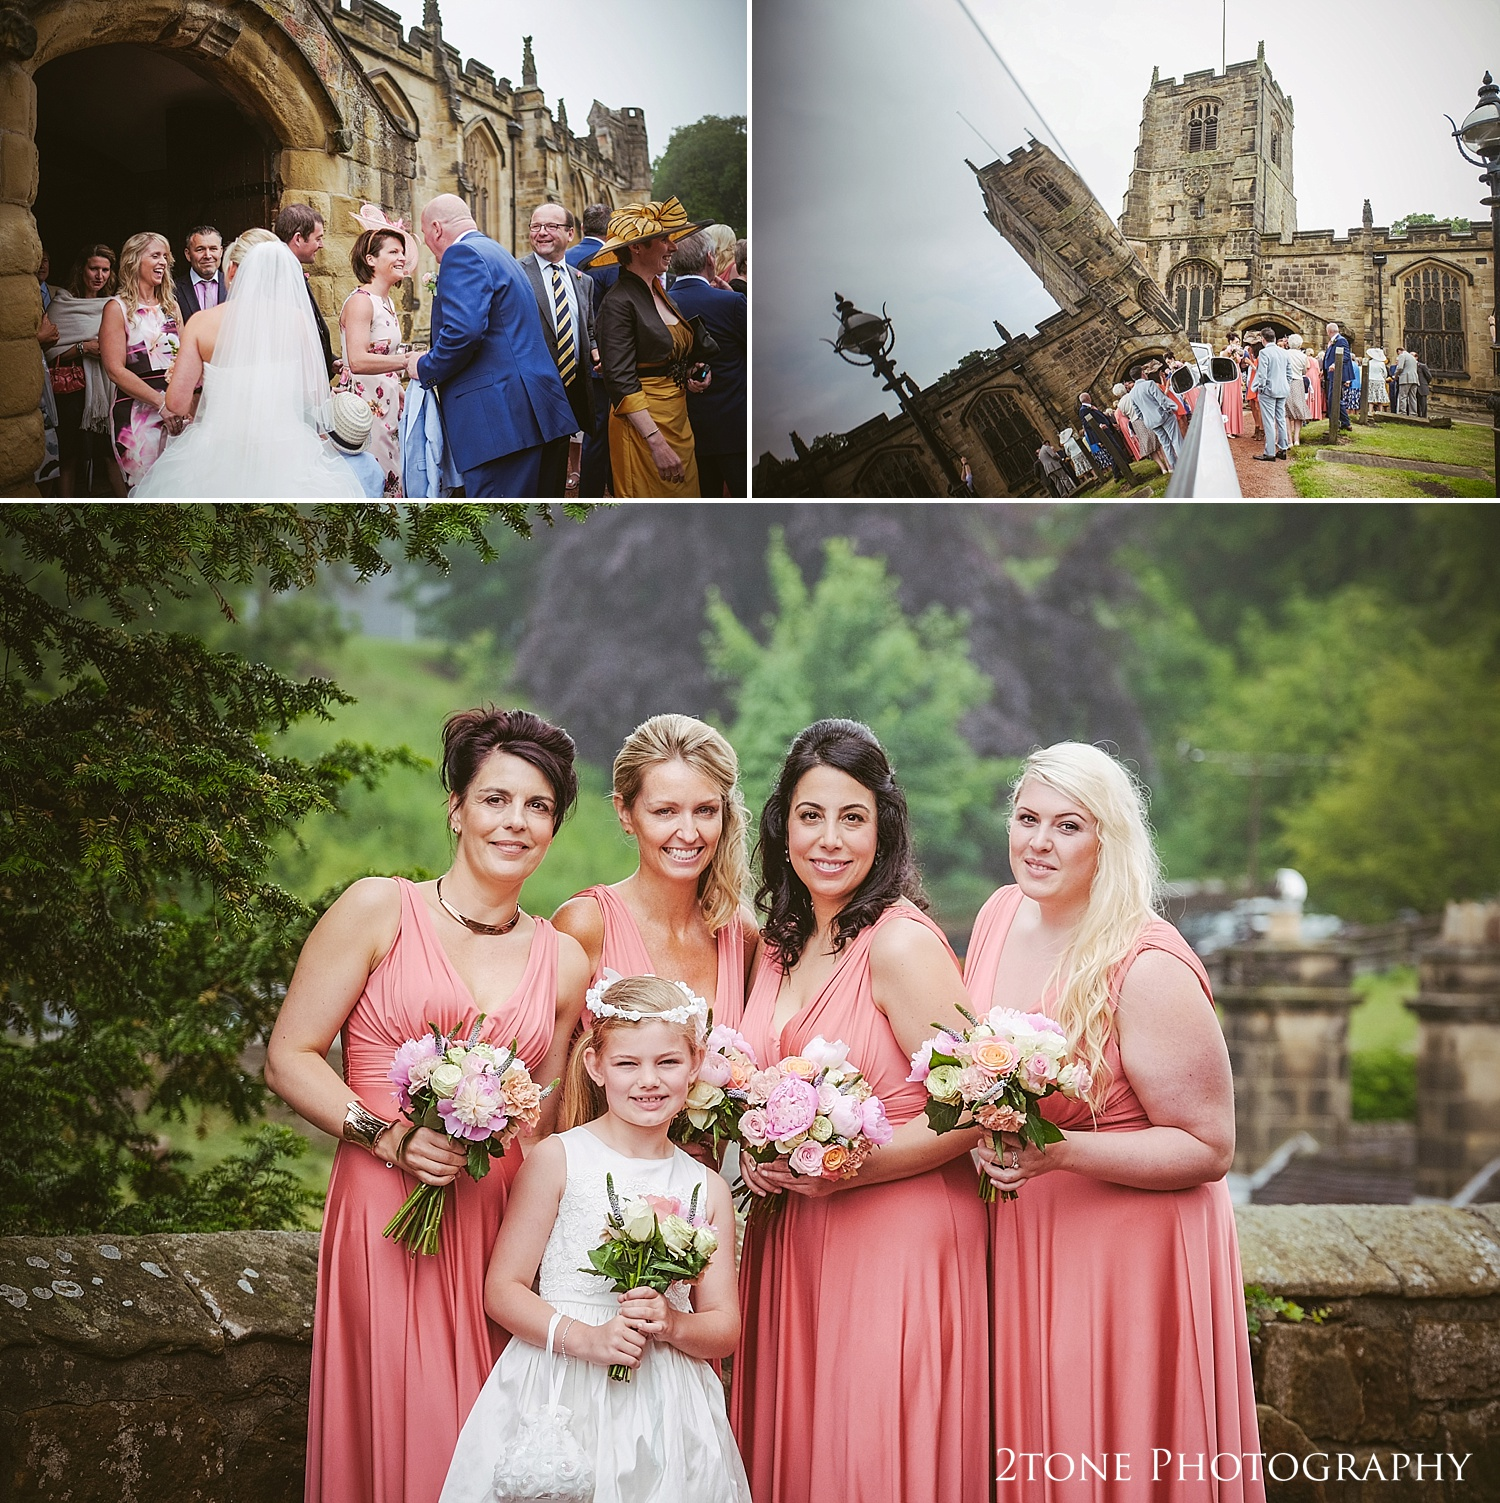 Weddings in church by Newcastle and Durham based wedding photographers www.2tonephotography.co.uk